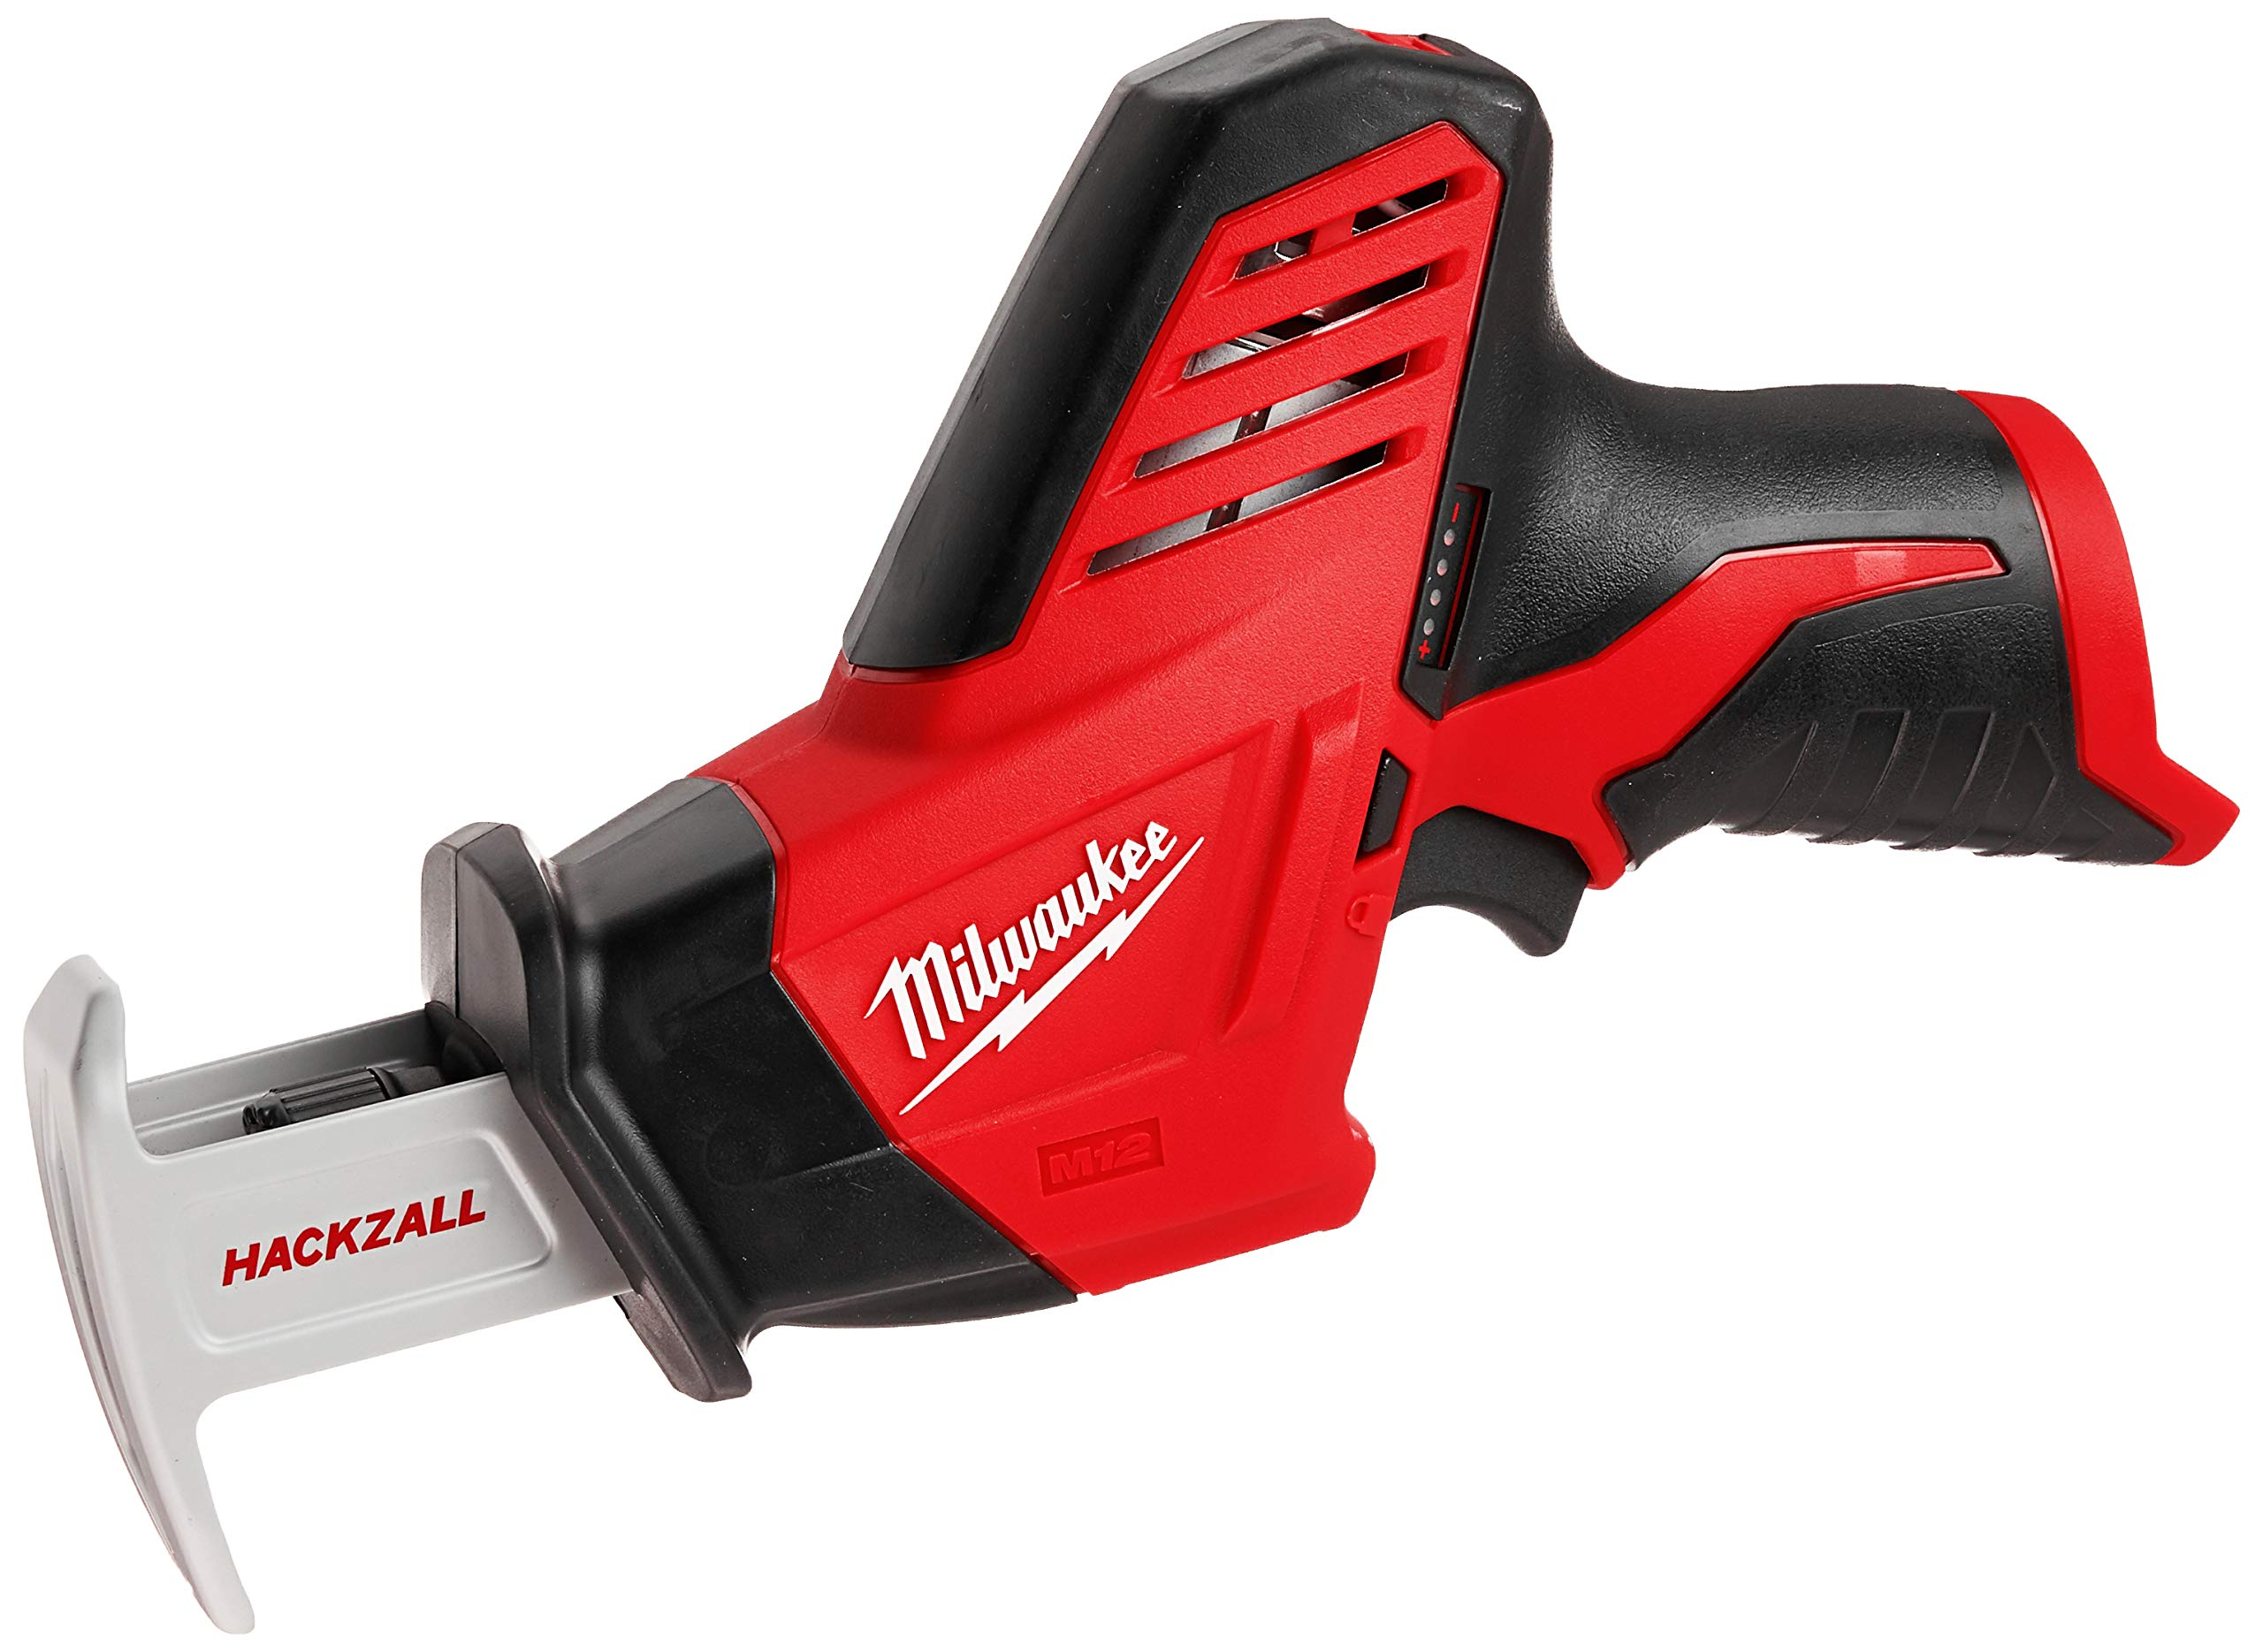 Milwaukee M12 12-Volt Hackzall Recip Saw (2420-20) (Tool Only - No Battery) by Milwaukee